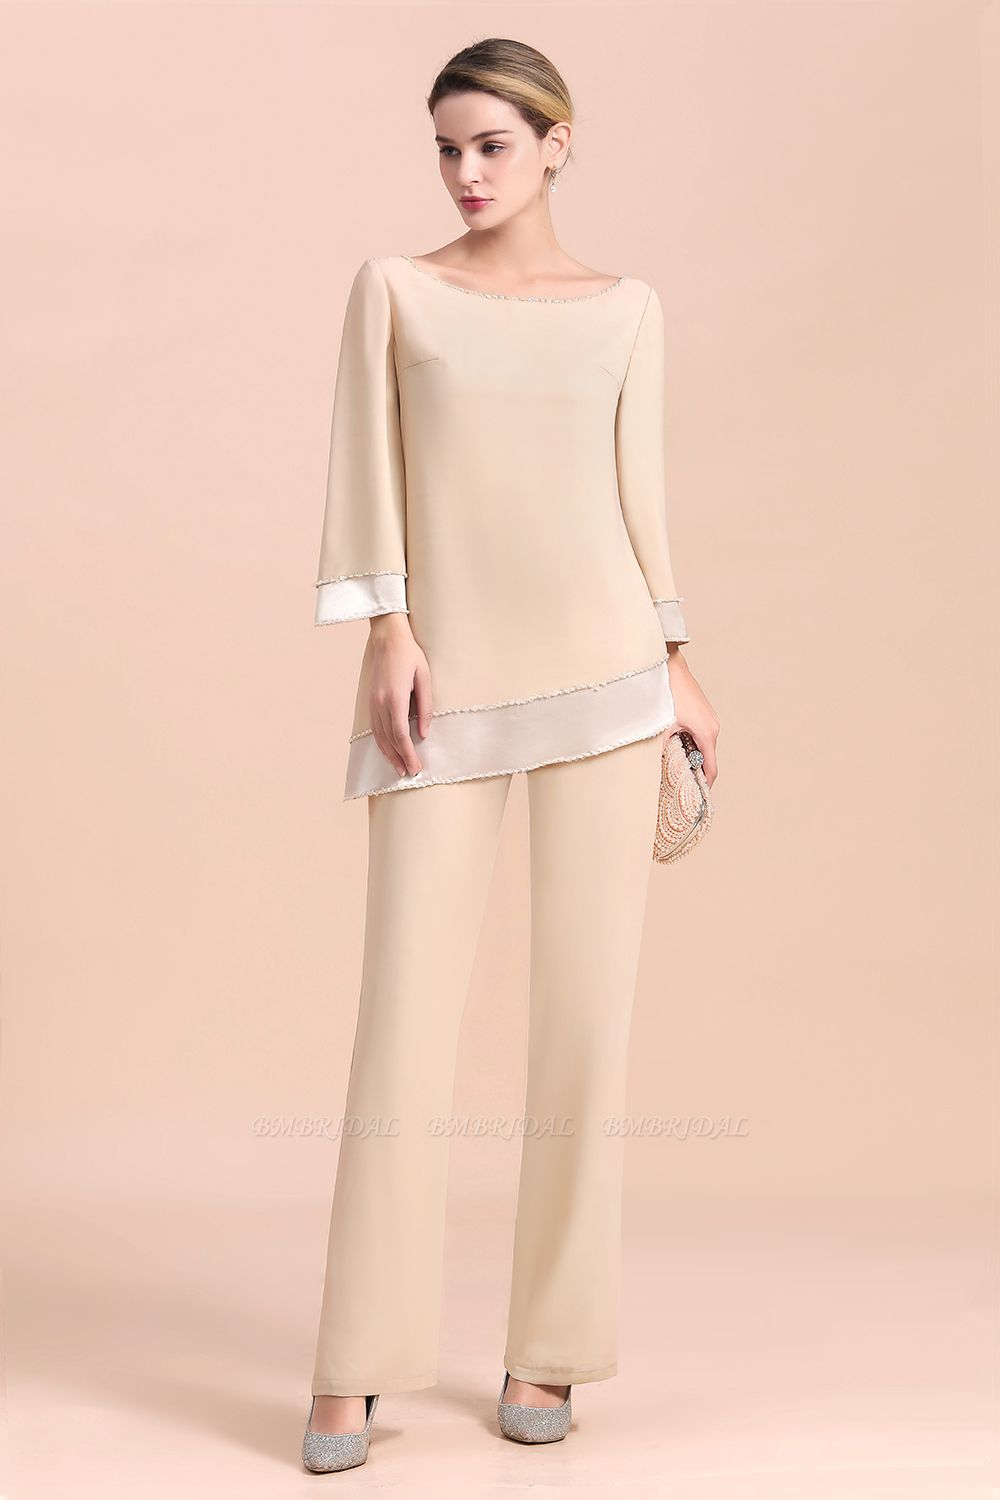 BMbridal Chic Round-Neck Champagne Chiffon Mother of Bride Jumpsuit Online